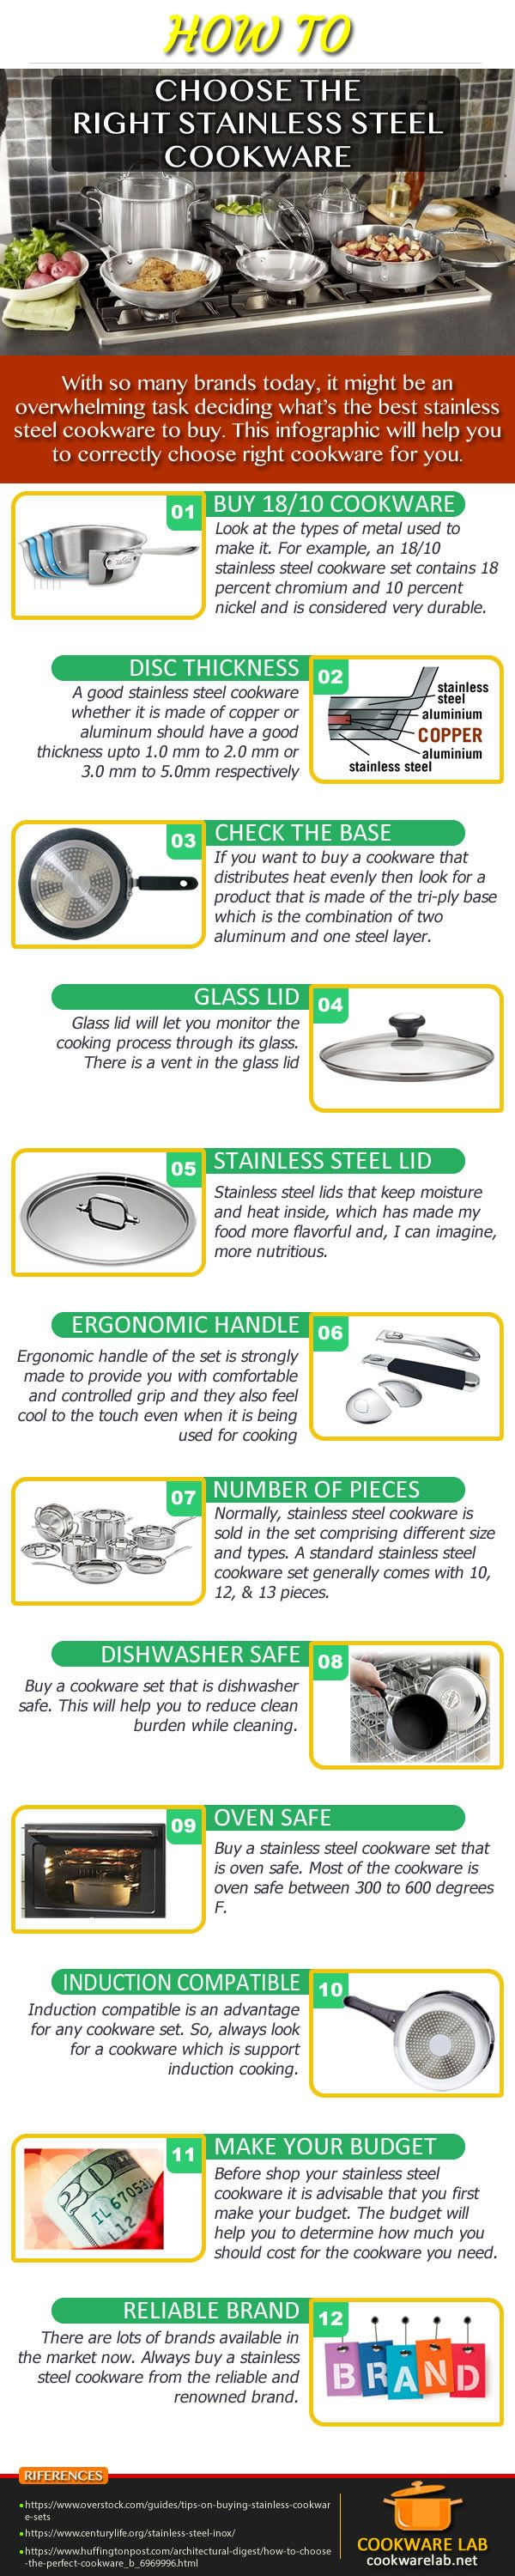 How to Choose the Right Stainless Steel Cookware